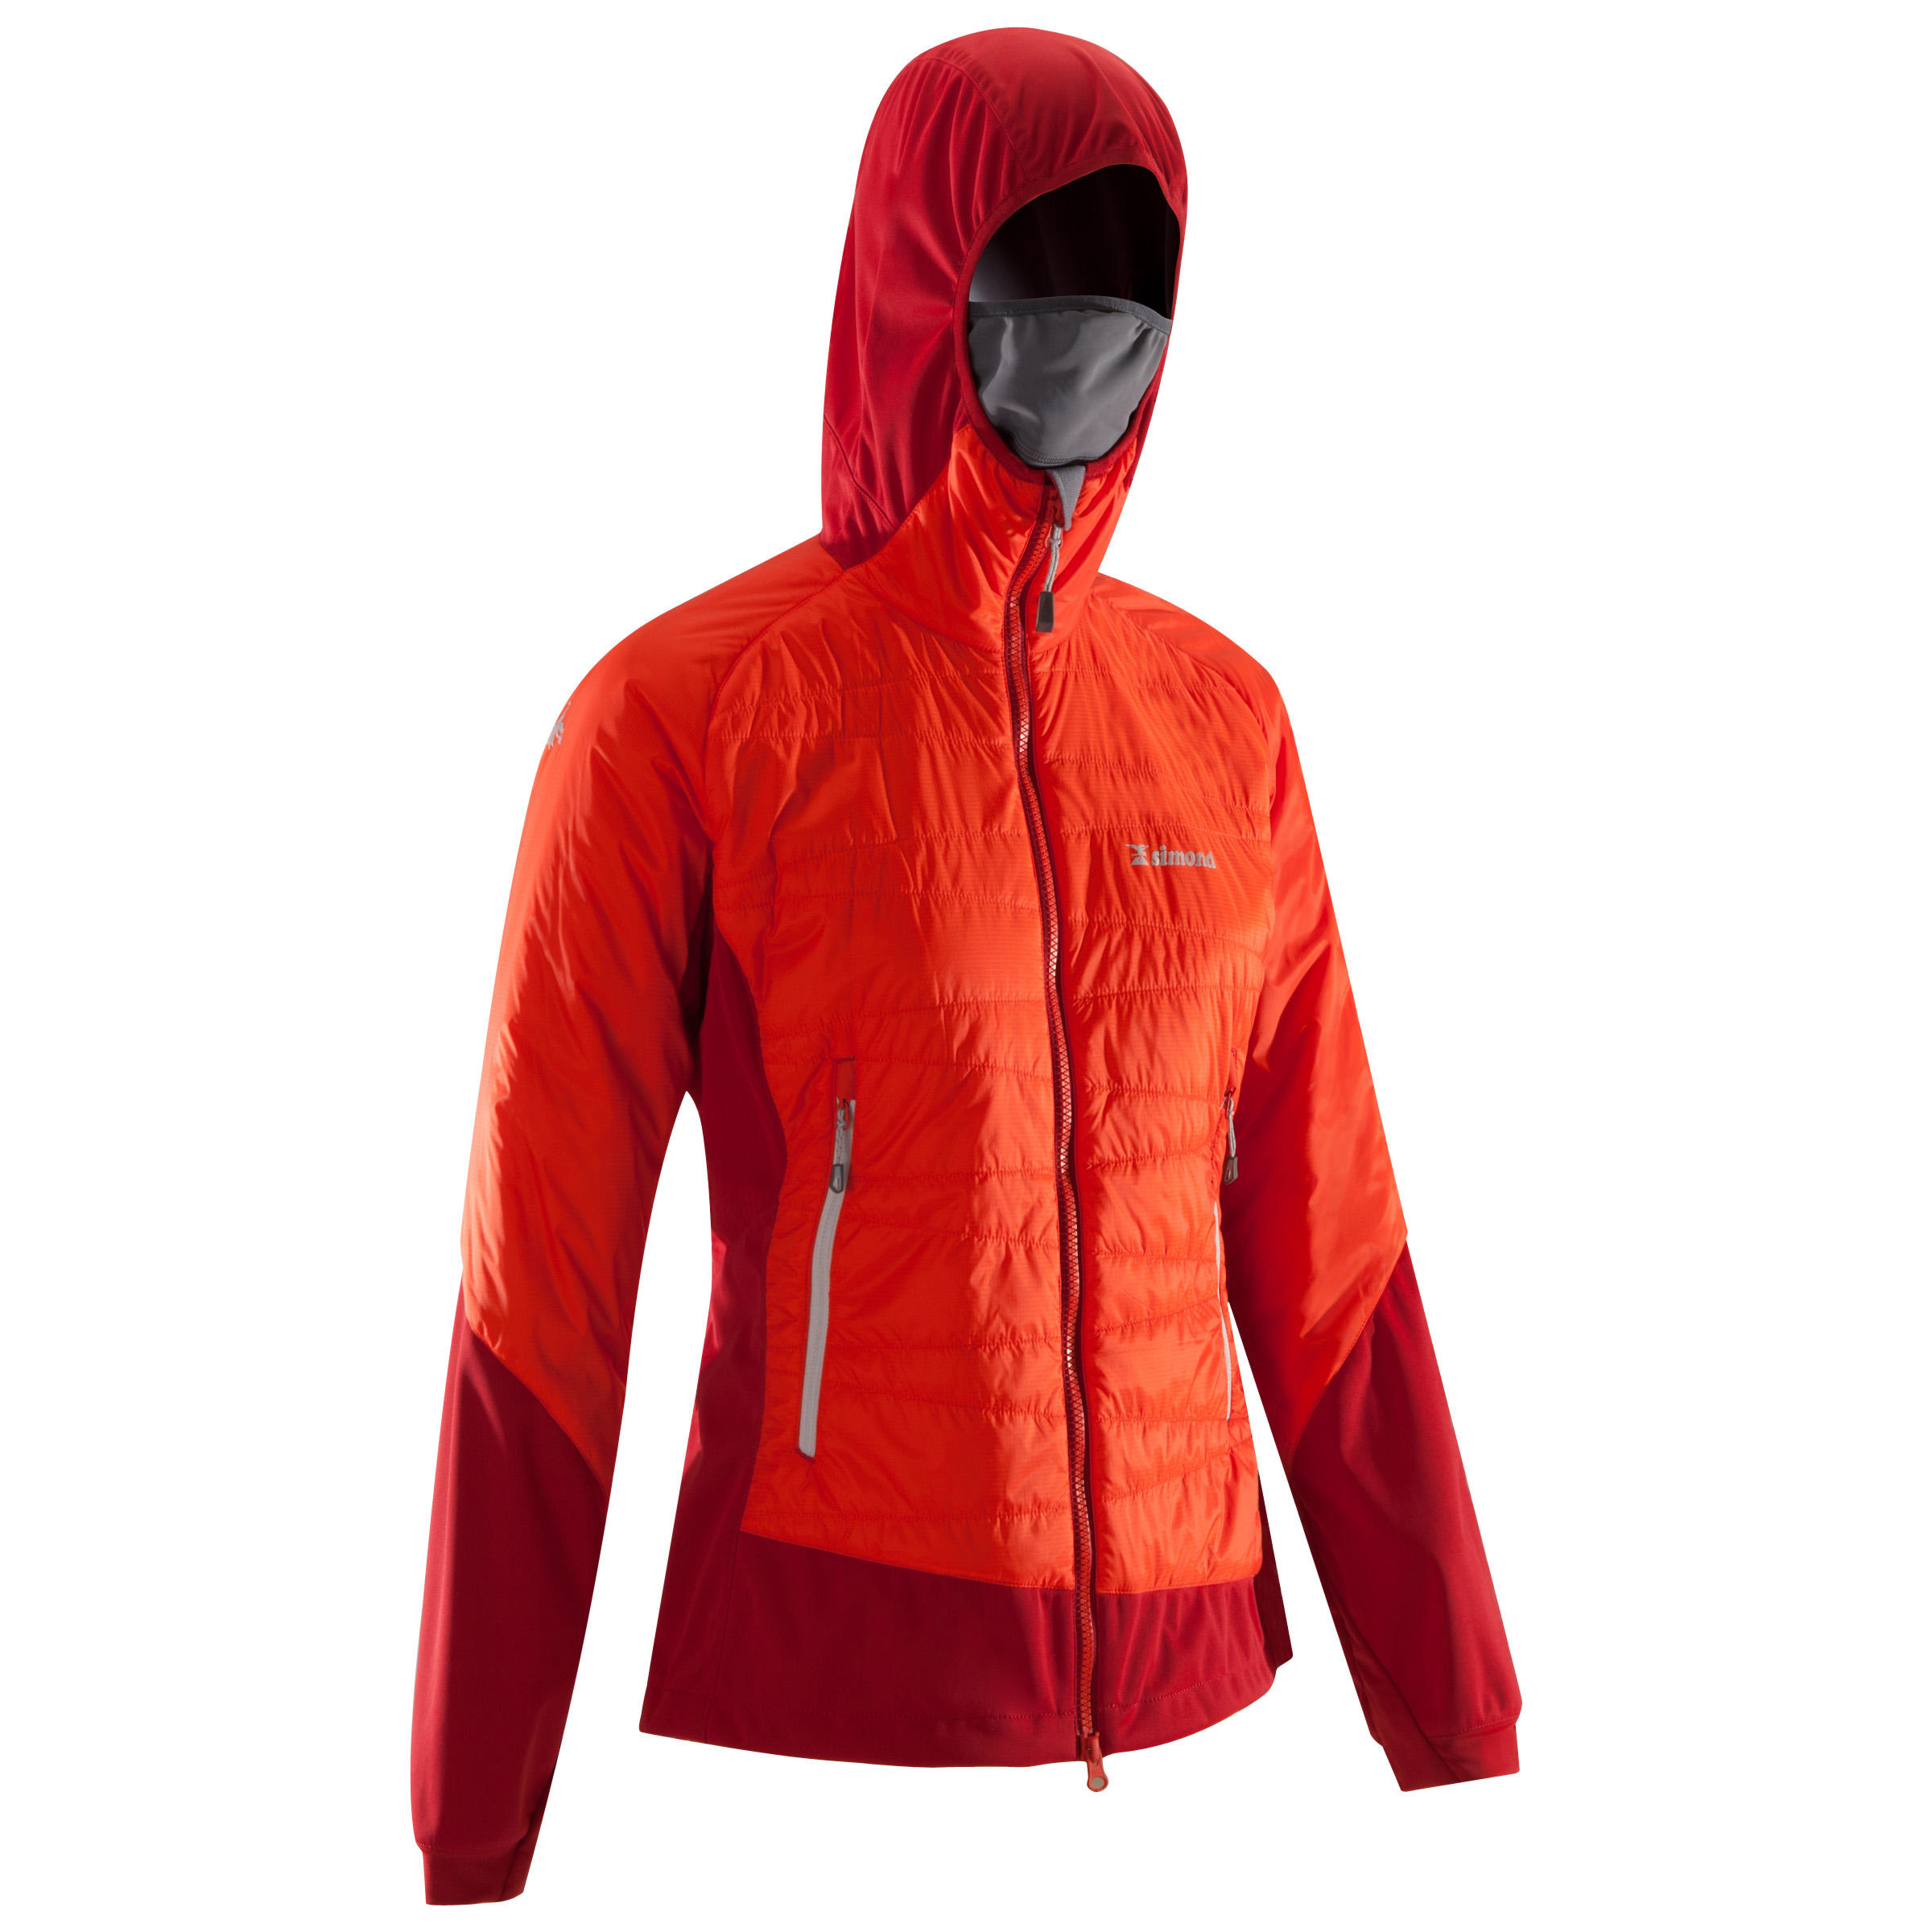 Veste d'isolation active HYBRIDE FEMME Rouge